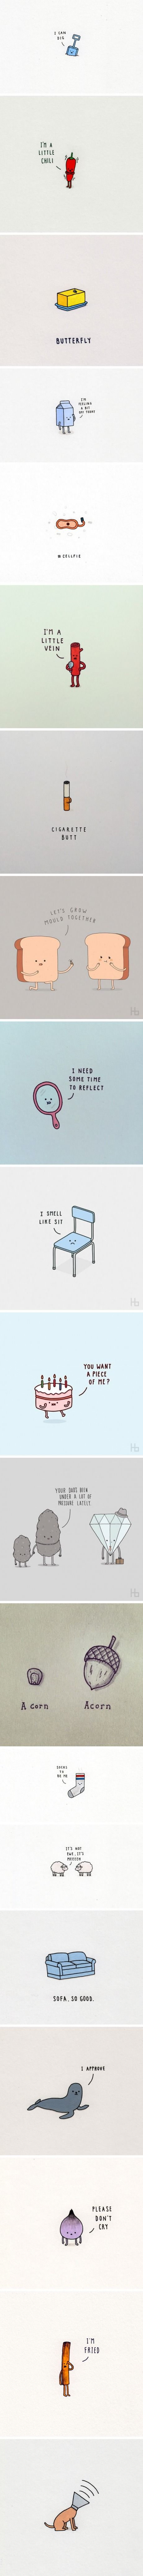 This Artist Makes Minimalist Illustrations To Make You Smile